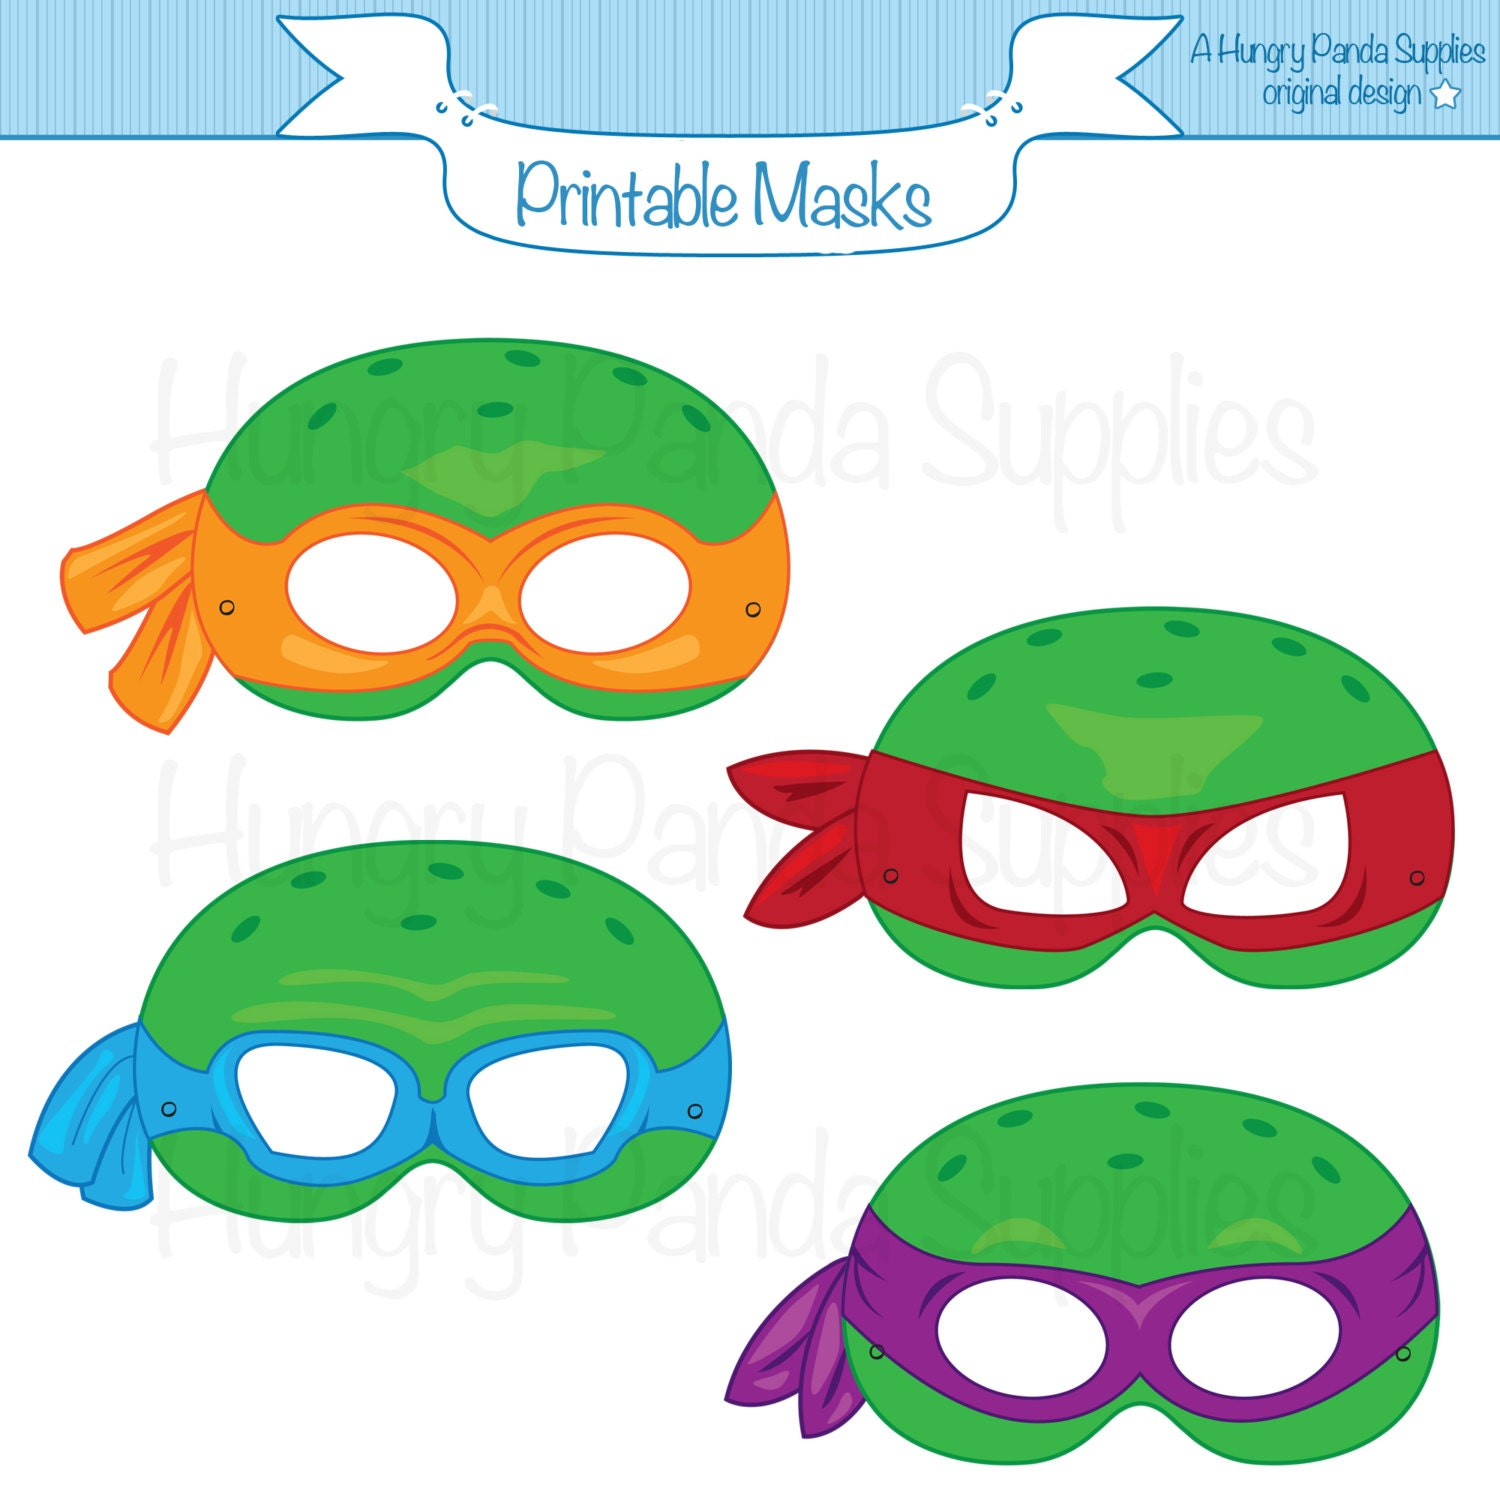 This is a graphic of Selective Ninja Turtle Printable Mask